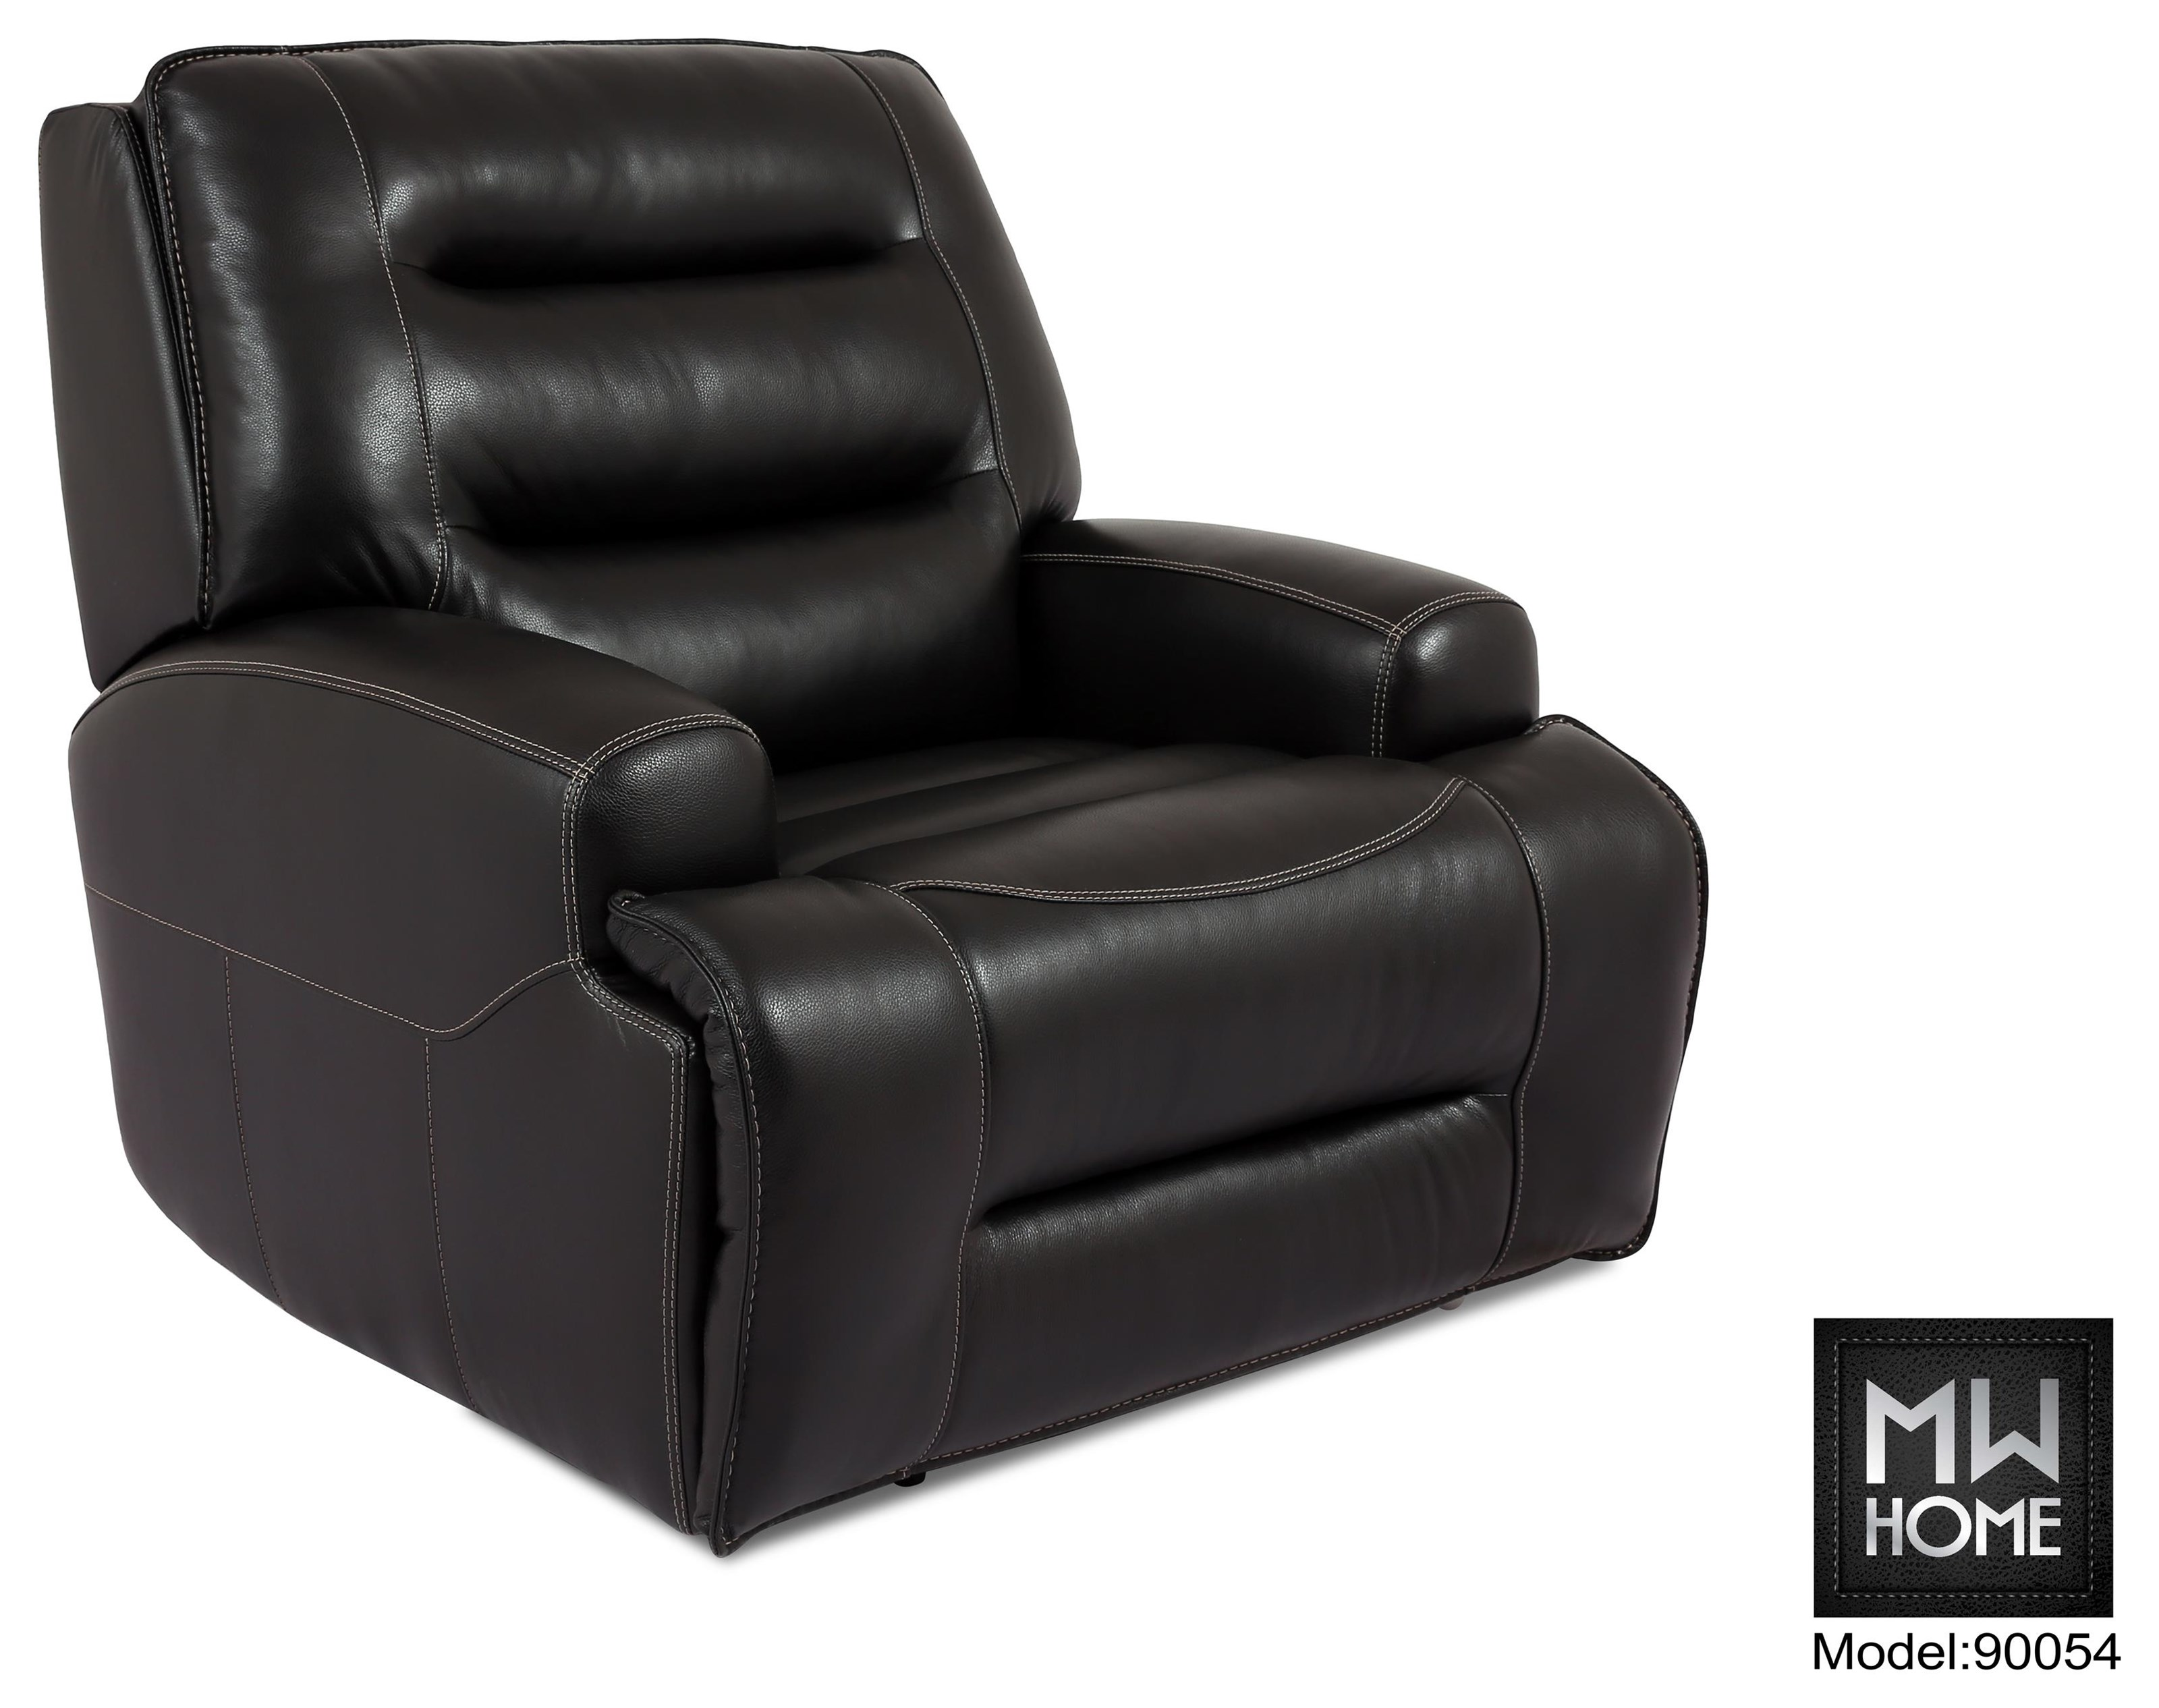 9005 Leather Match Power Recliner by Cheers at Darvin Furniture